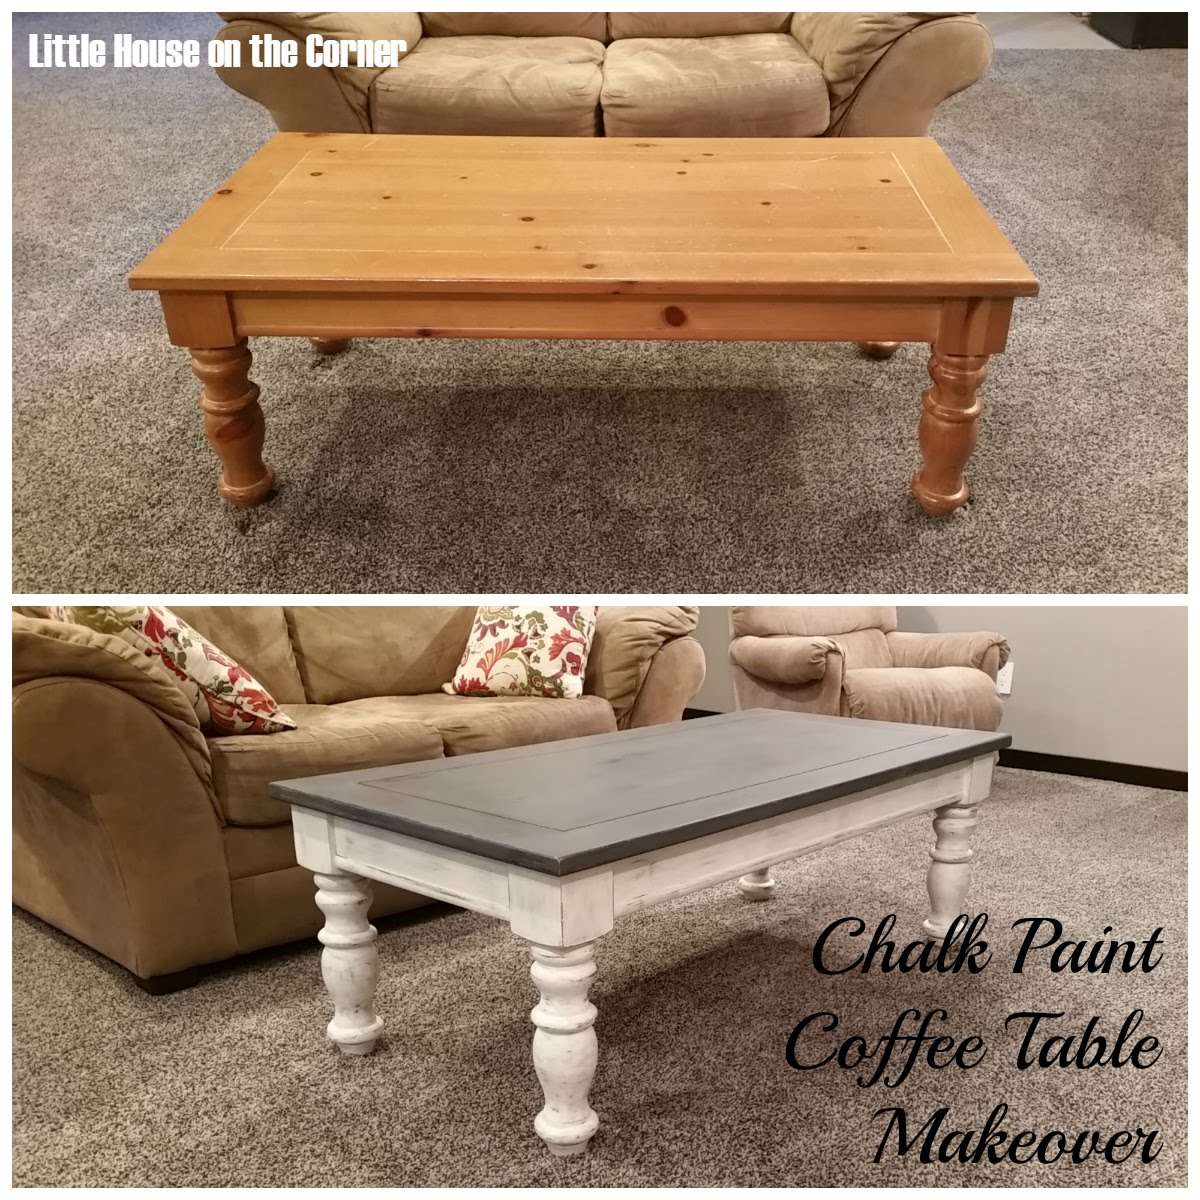 Tisch Lackieren Little House On The Corner: Chalk Paint Coffee Table Makeover